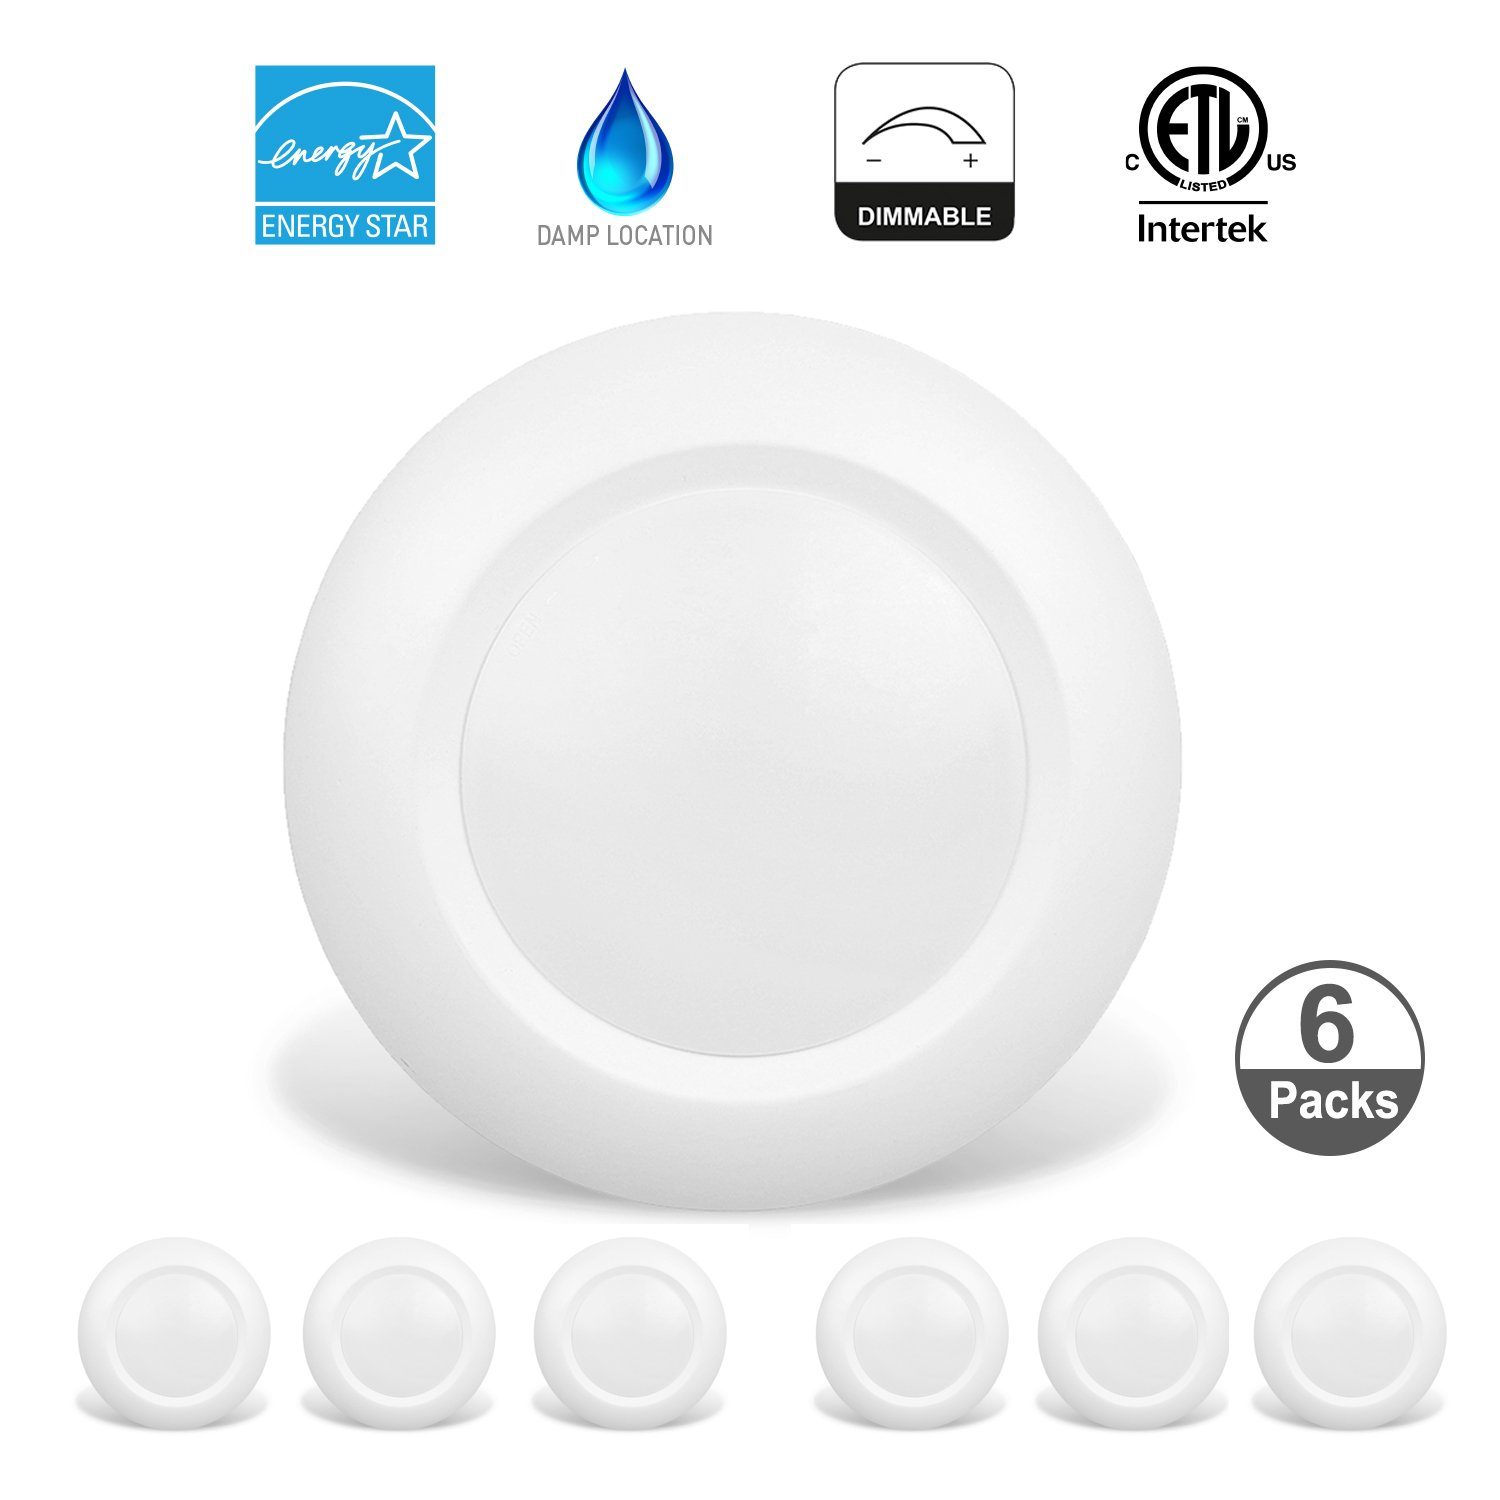 JULLISON 6 Packs 4 Inch LED Low Profile Recessed & Surface Mount Disk Light, Round, 10W, 600 Lumens, 3000K Warm White, CRI80, DOB Design, Dimmable, Energy Star, ETL Listed, White ... by JULLISON (Image #3)